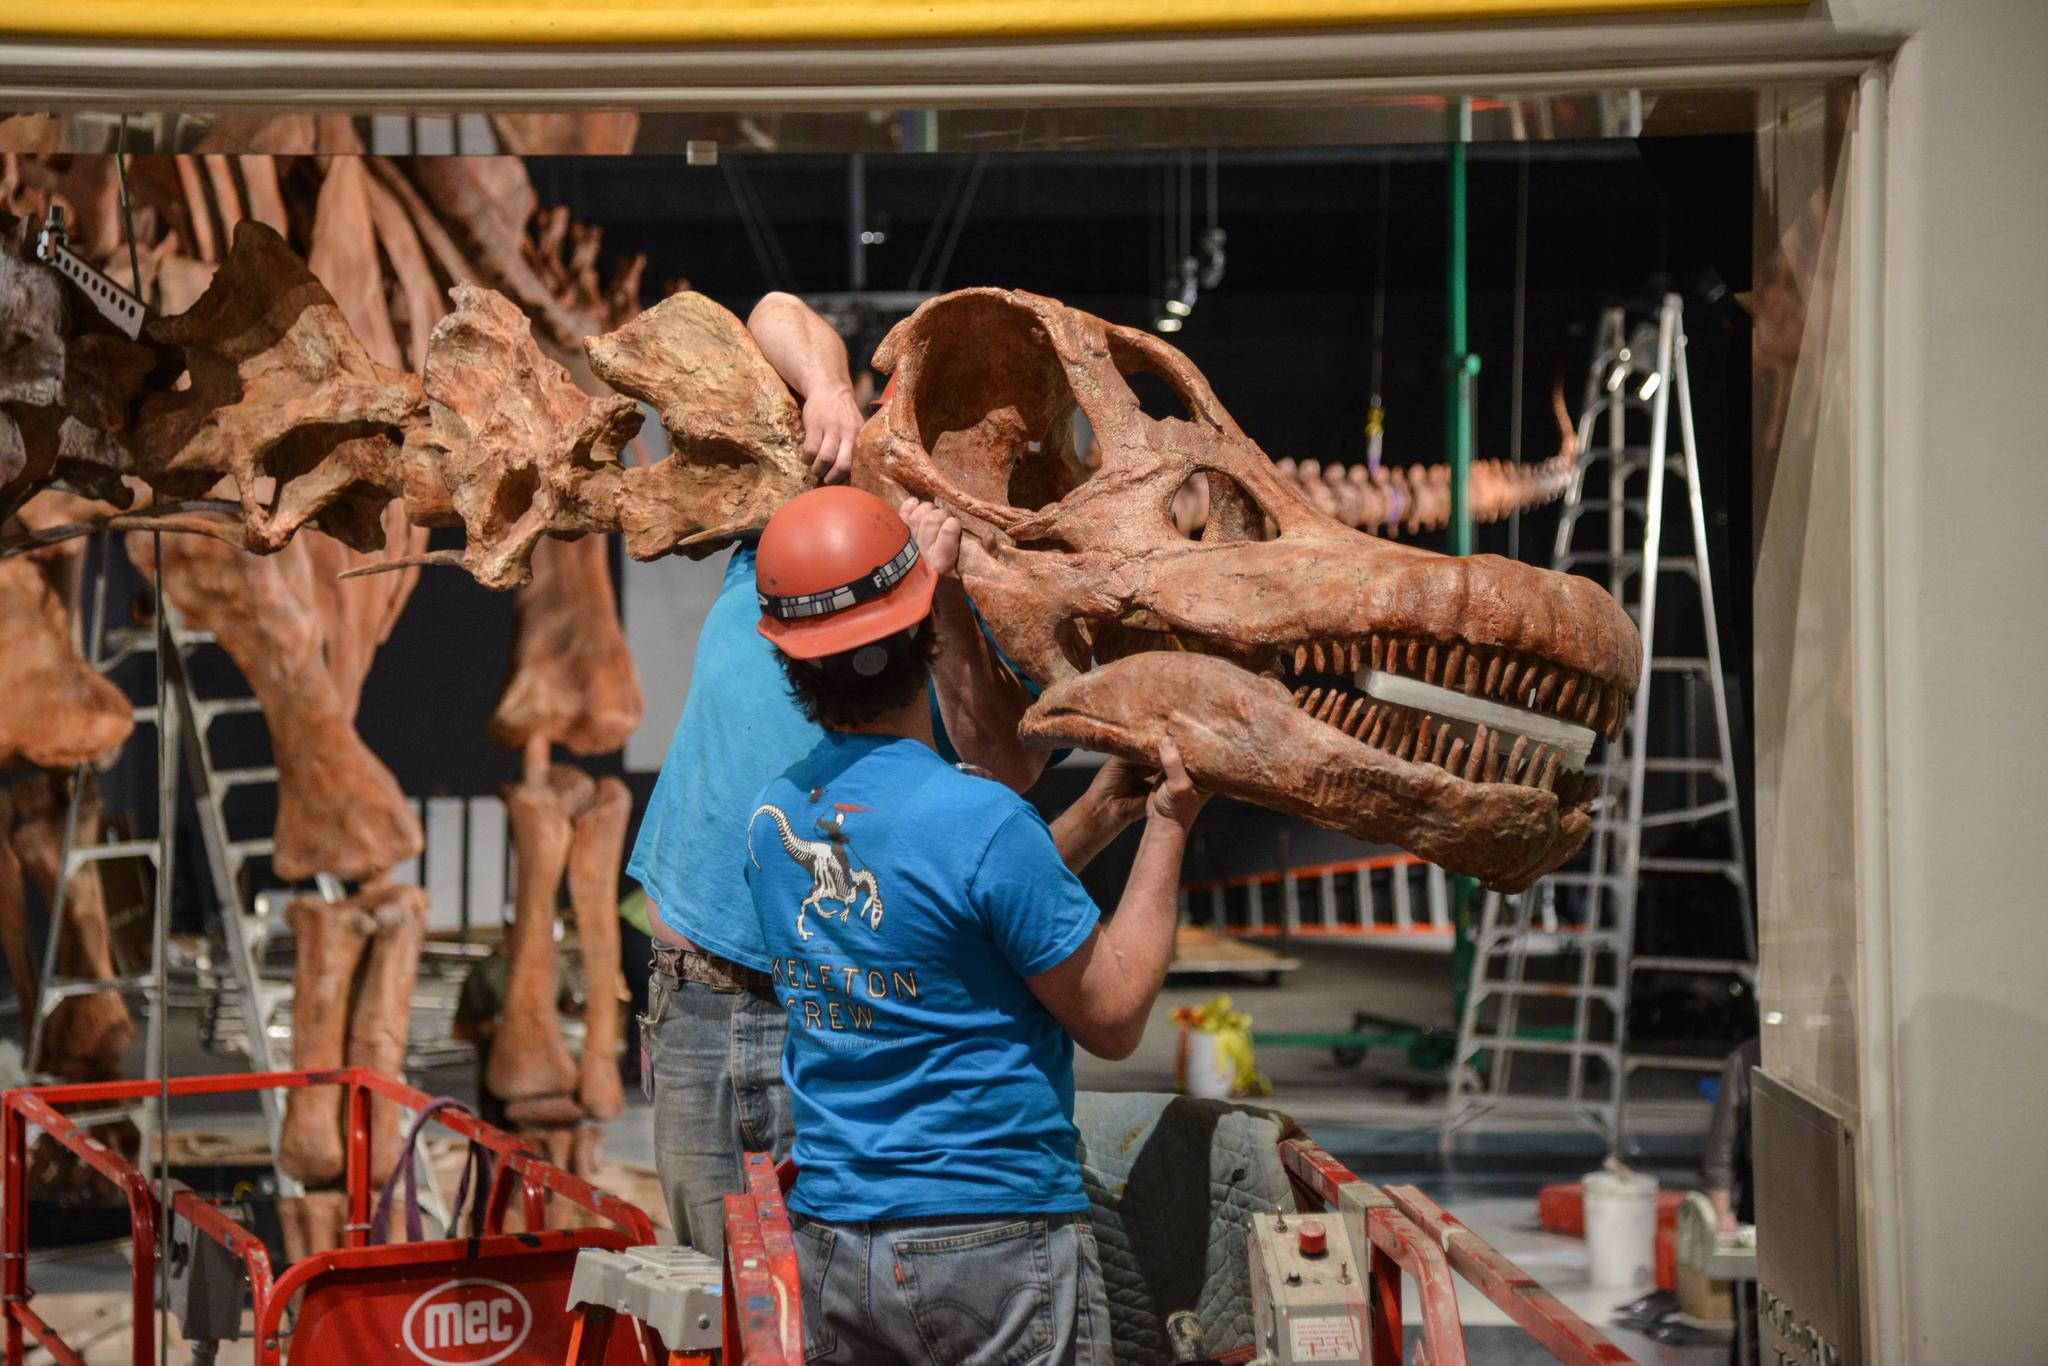 Research Casting International (RCI) installs the titanosaur cast in the Miriam and Ira D. Wallach Orientation Center at the American Museum of Natural History.